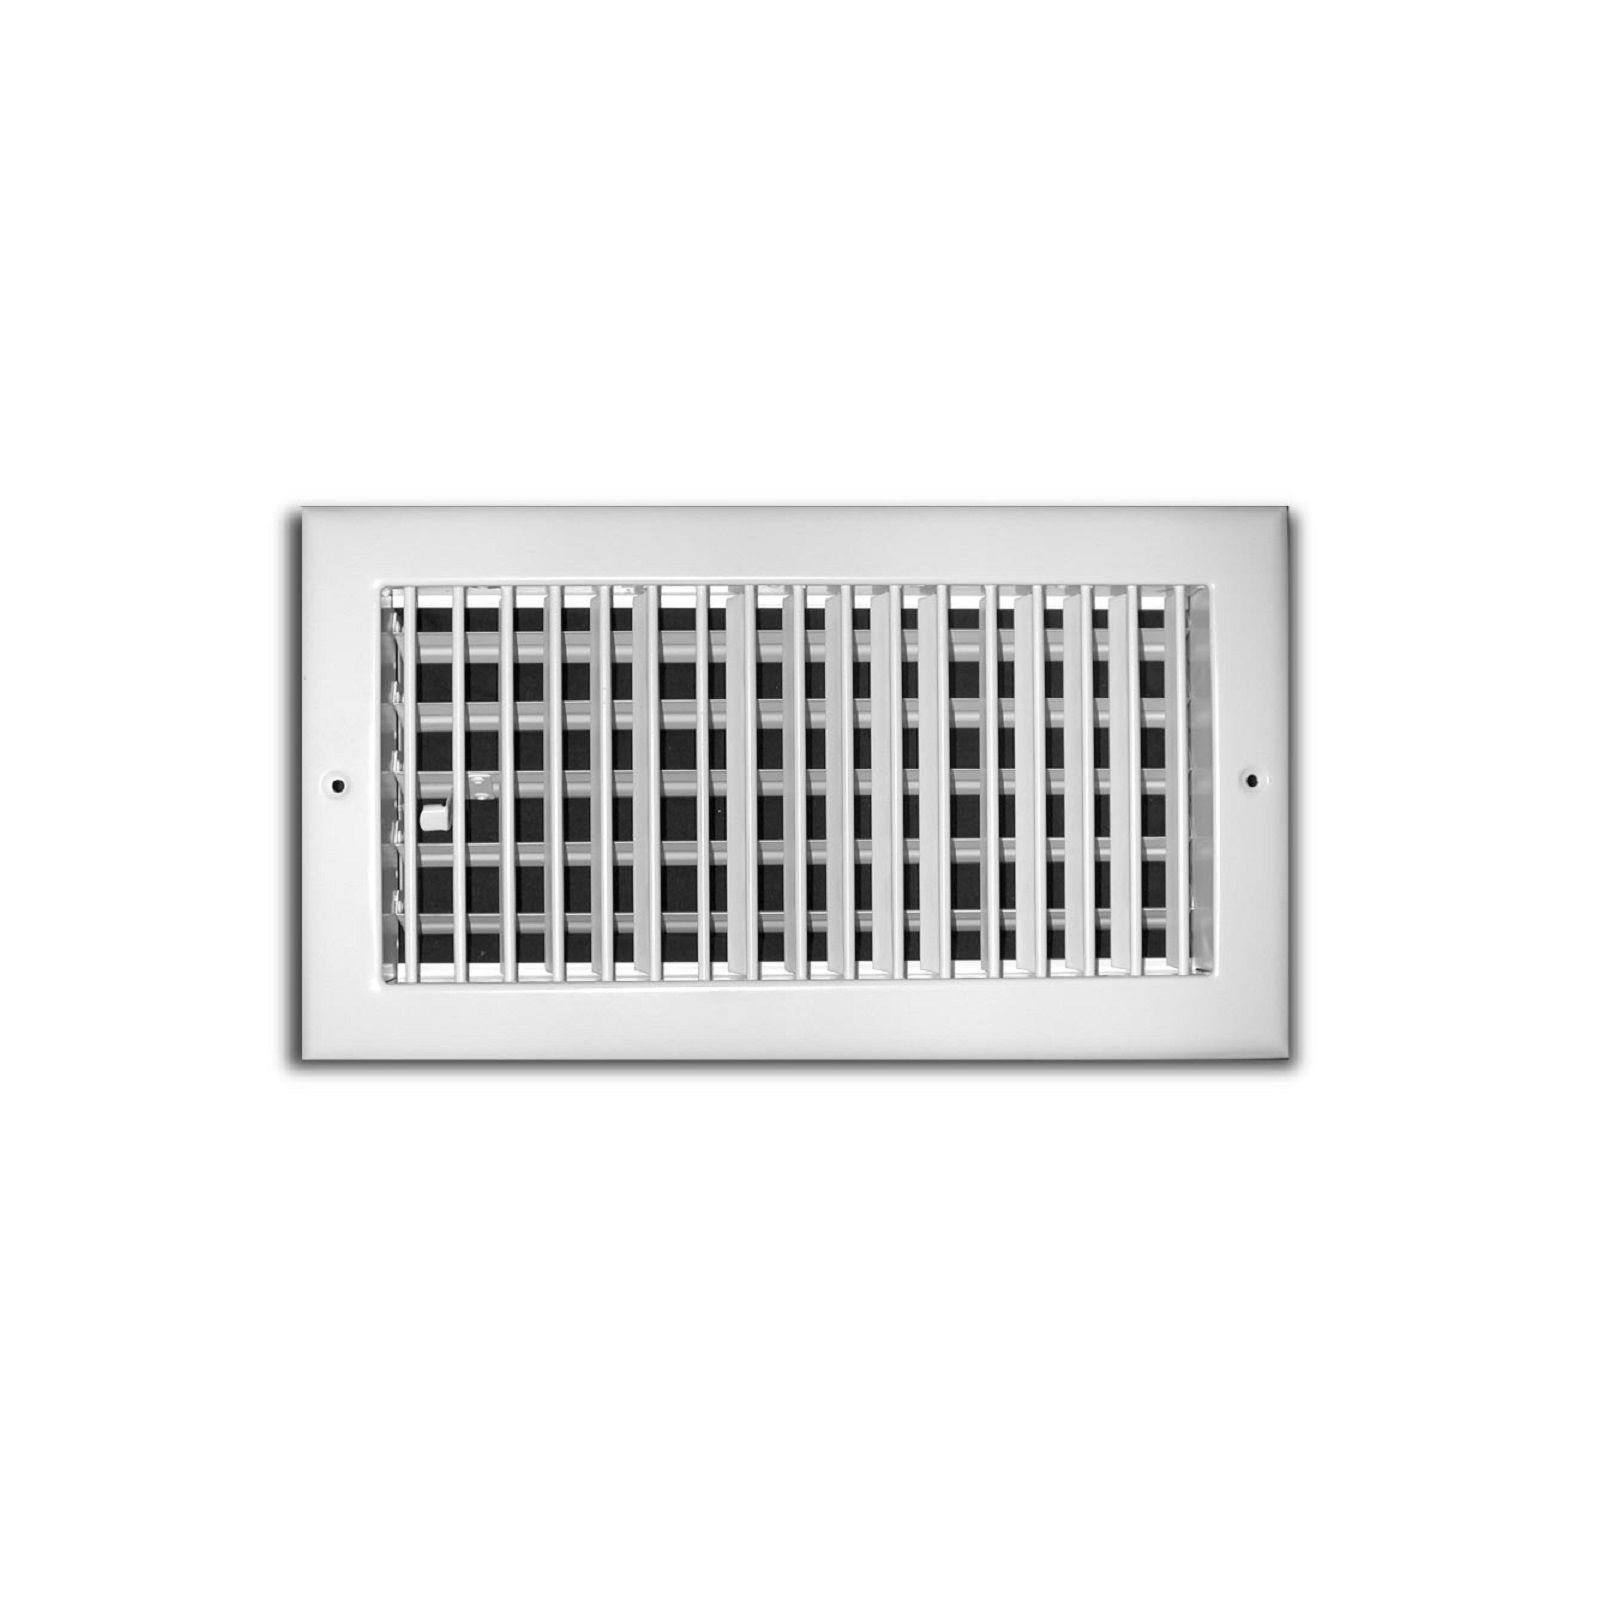 "TRUaire 210VM 08X04 - Steel Adjustable 1-Way Wall/Ceiling Register With Multi Shutter Damper, White, 08"" X 04"""